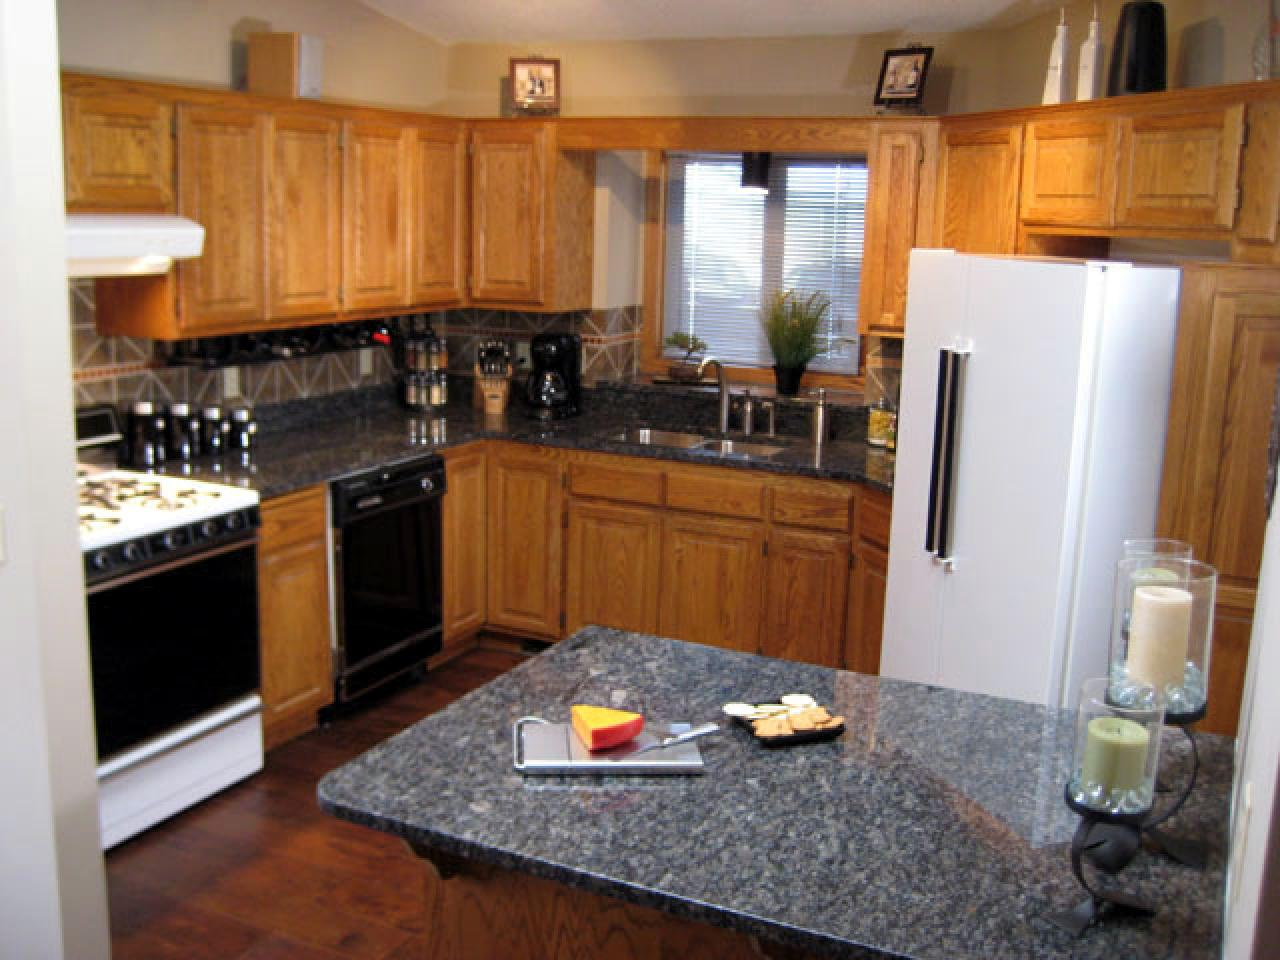 Kitchen Countertops Ideas : Granite kitchen countertop tips diy